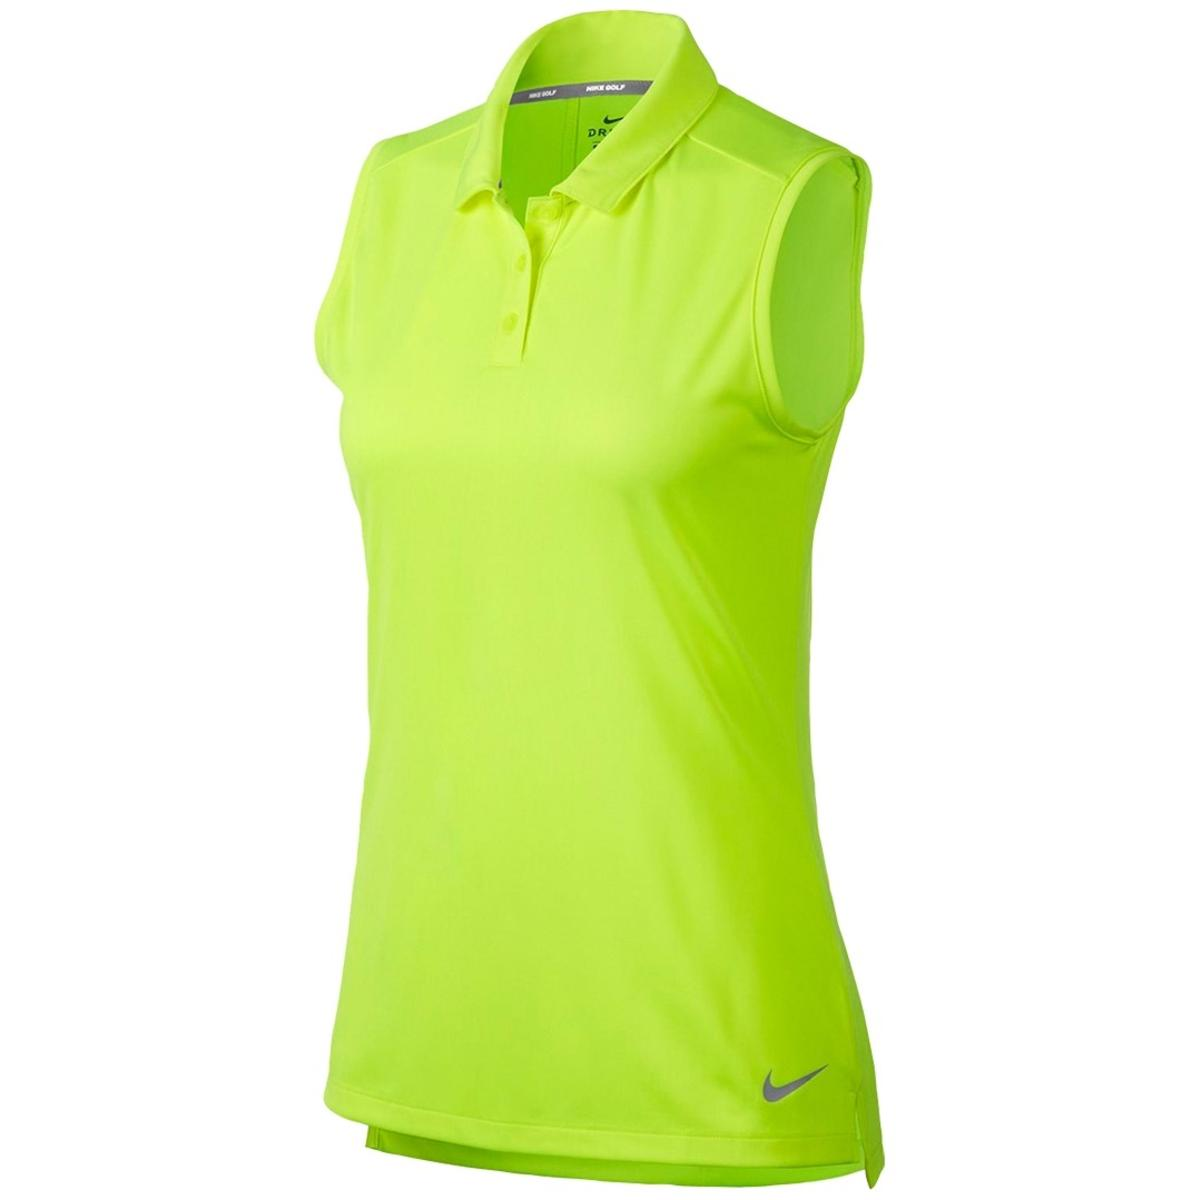 dfaf56d1 Details about Nike Golf Womens Yellow Fitness Training Sleeveless Polo  Athletic XL BHFO 2440